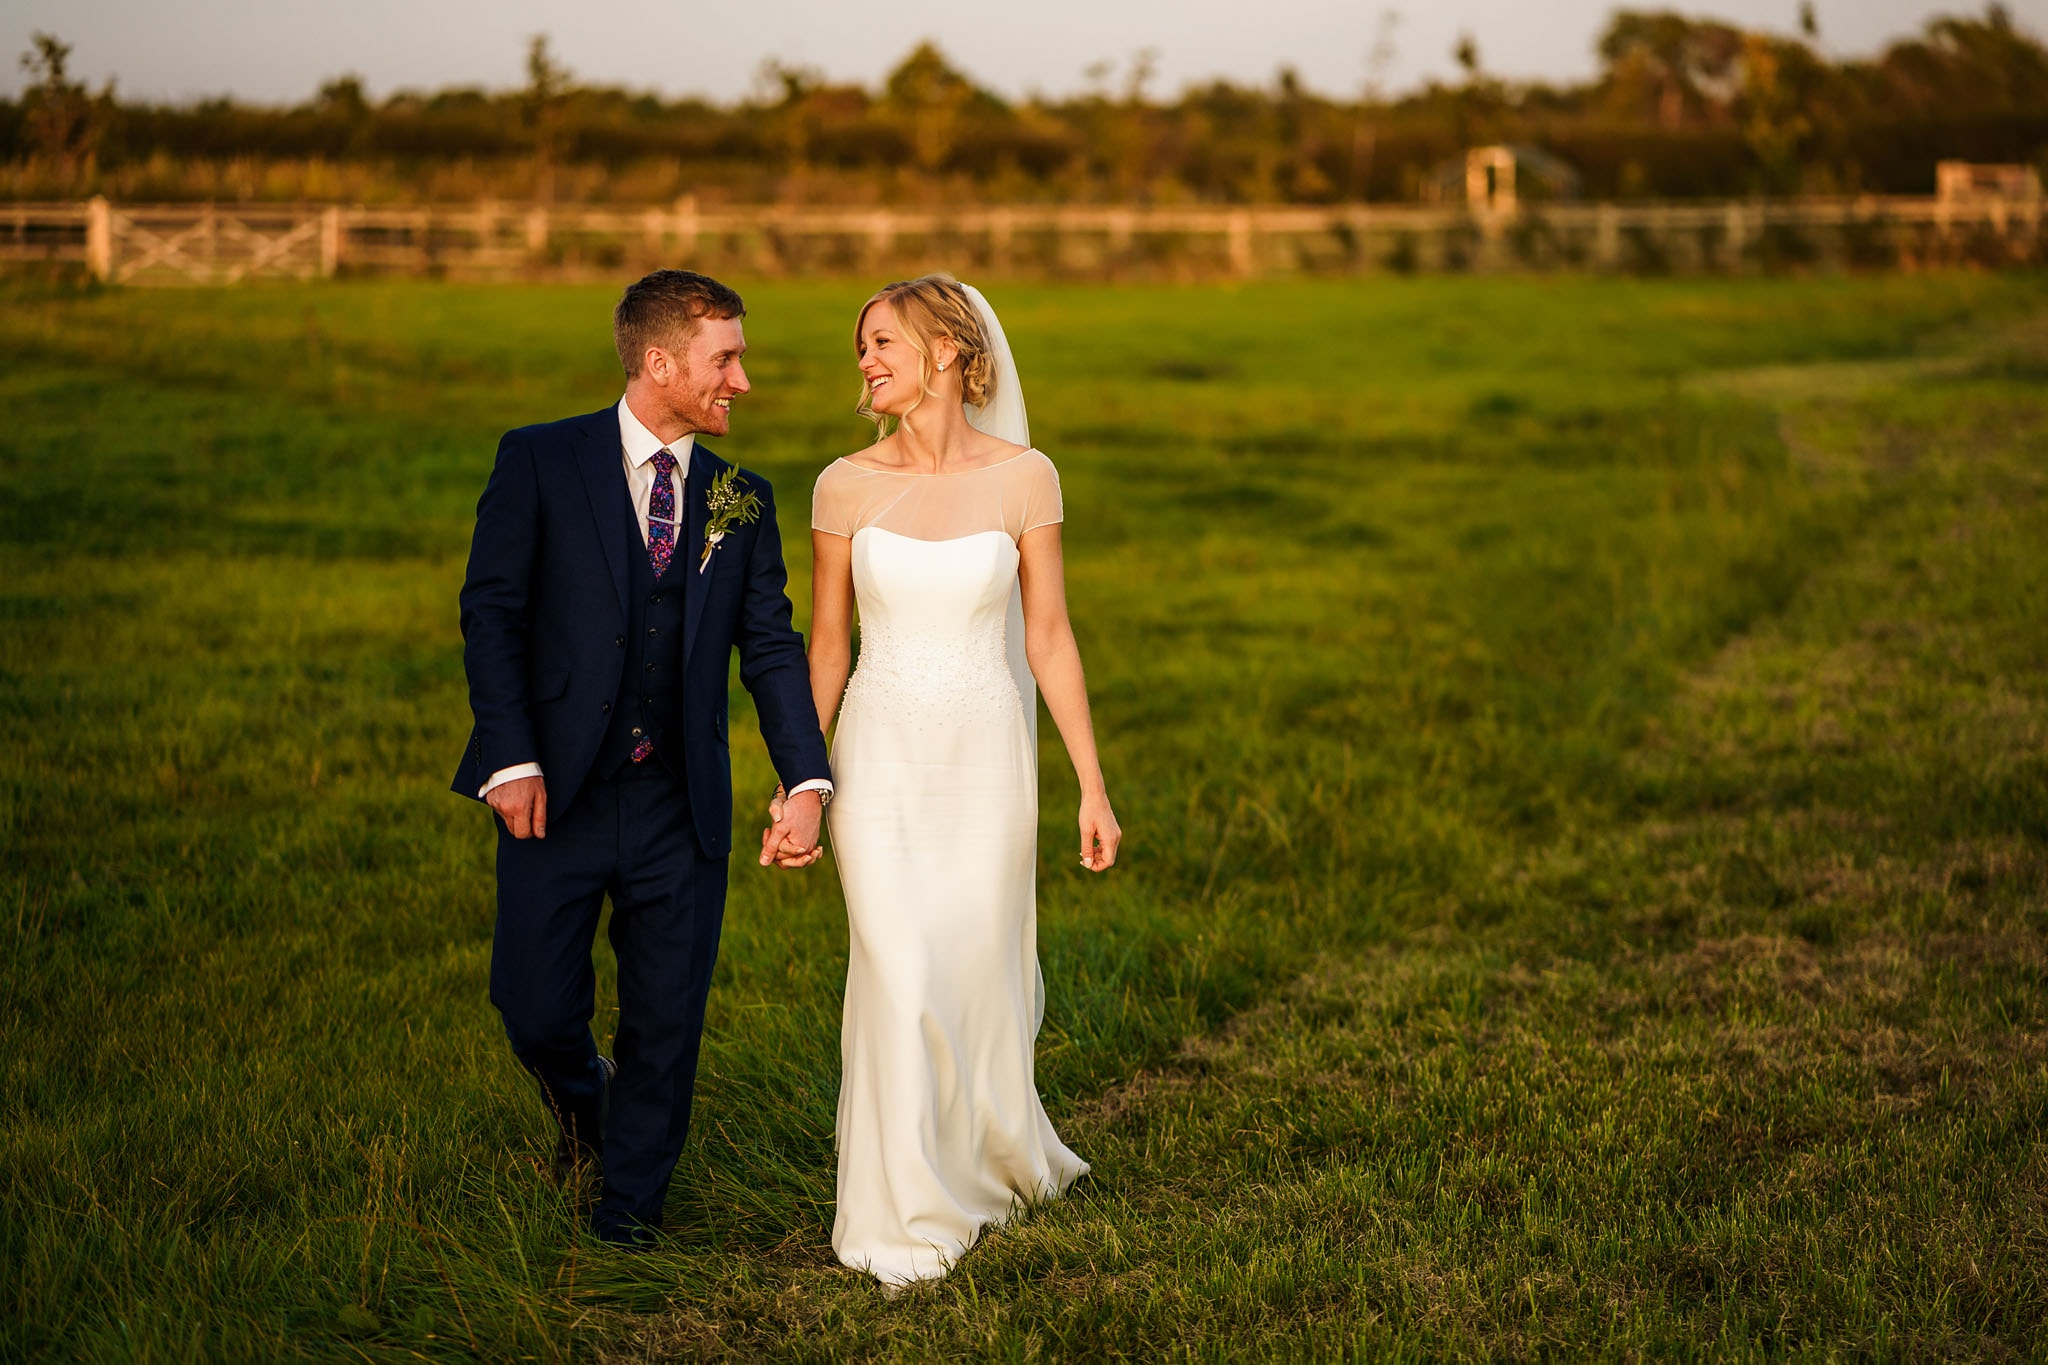 the happy couple walking through a field together